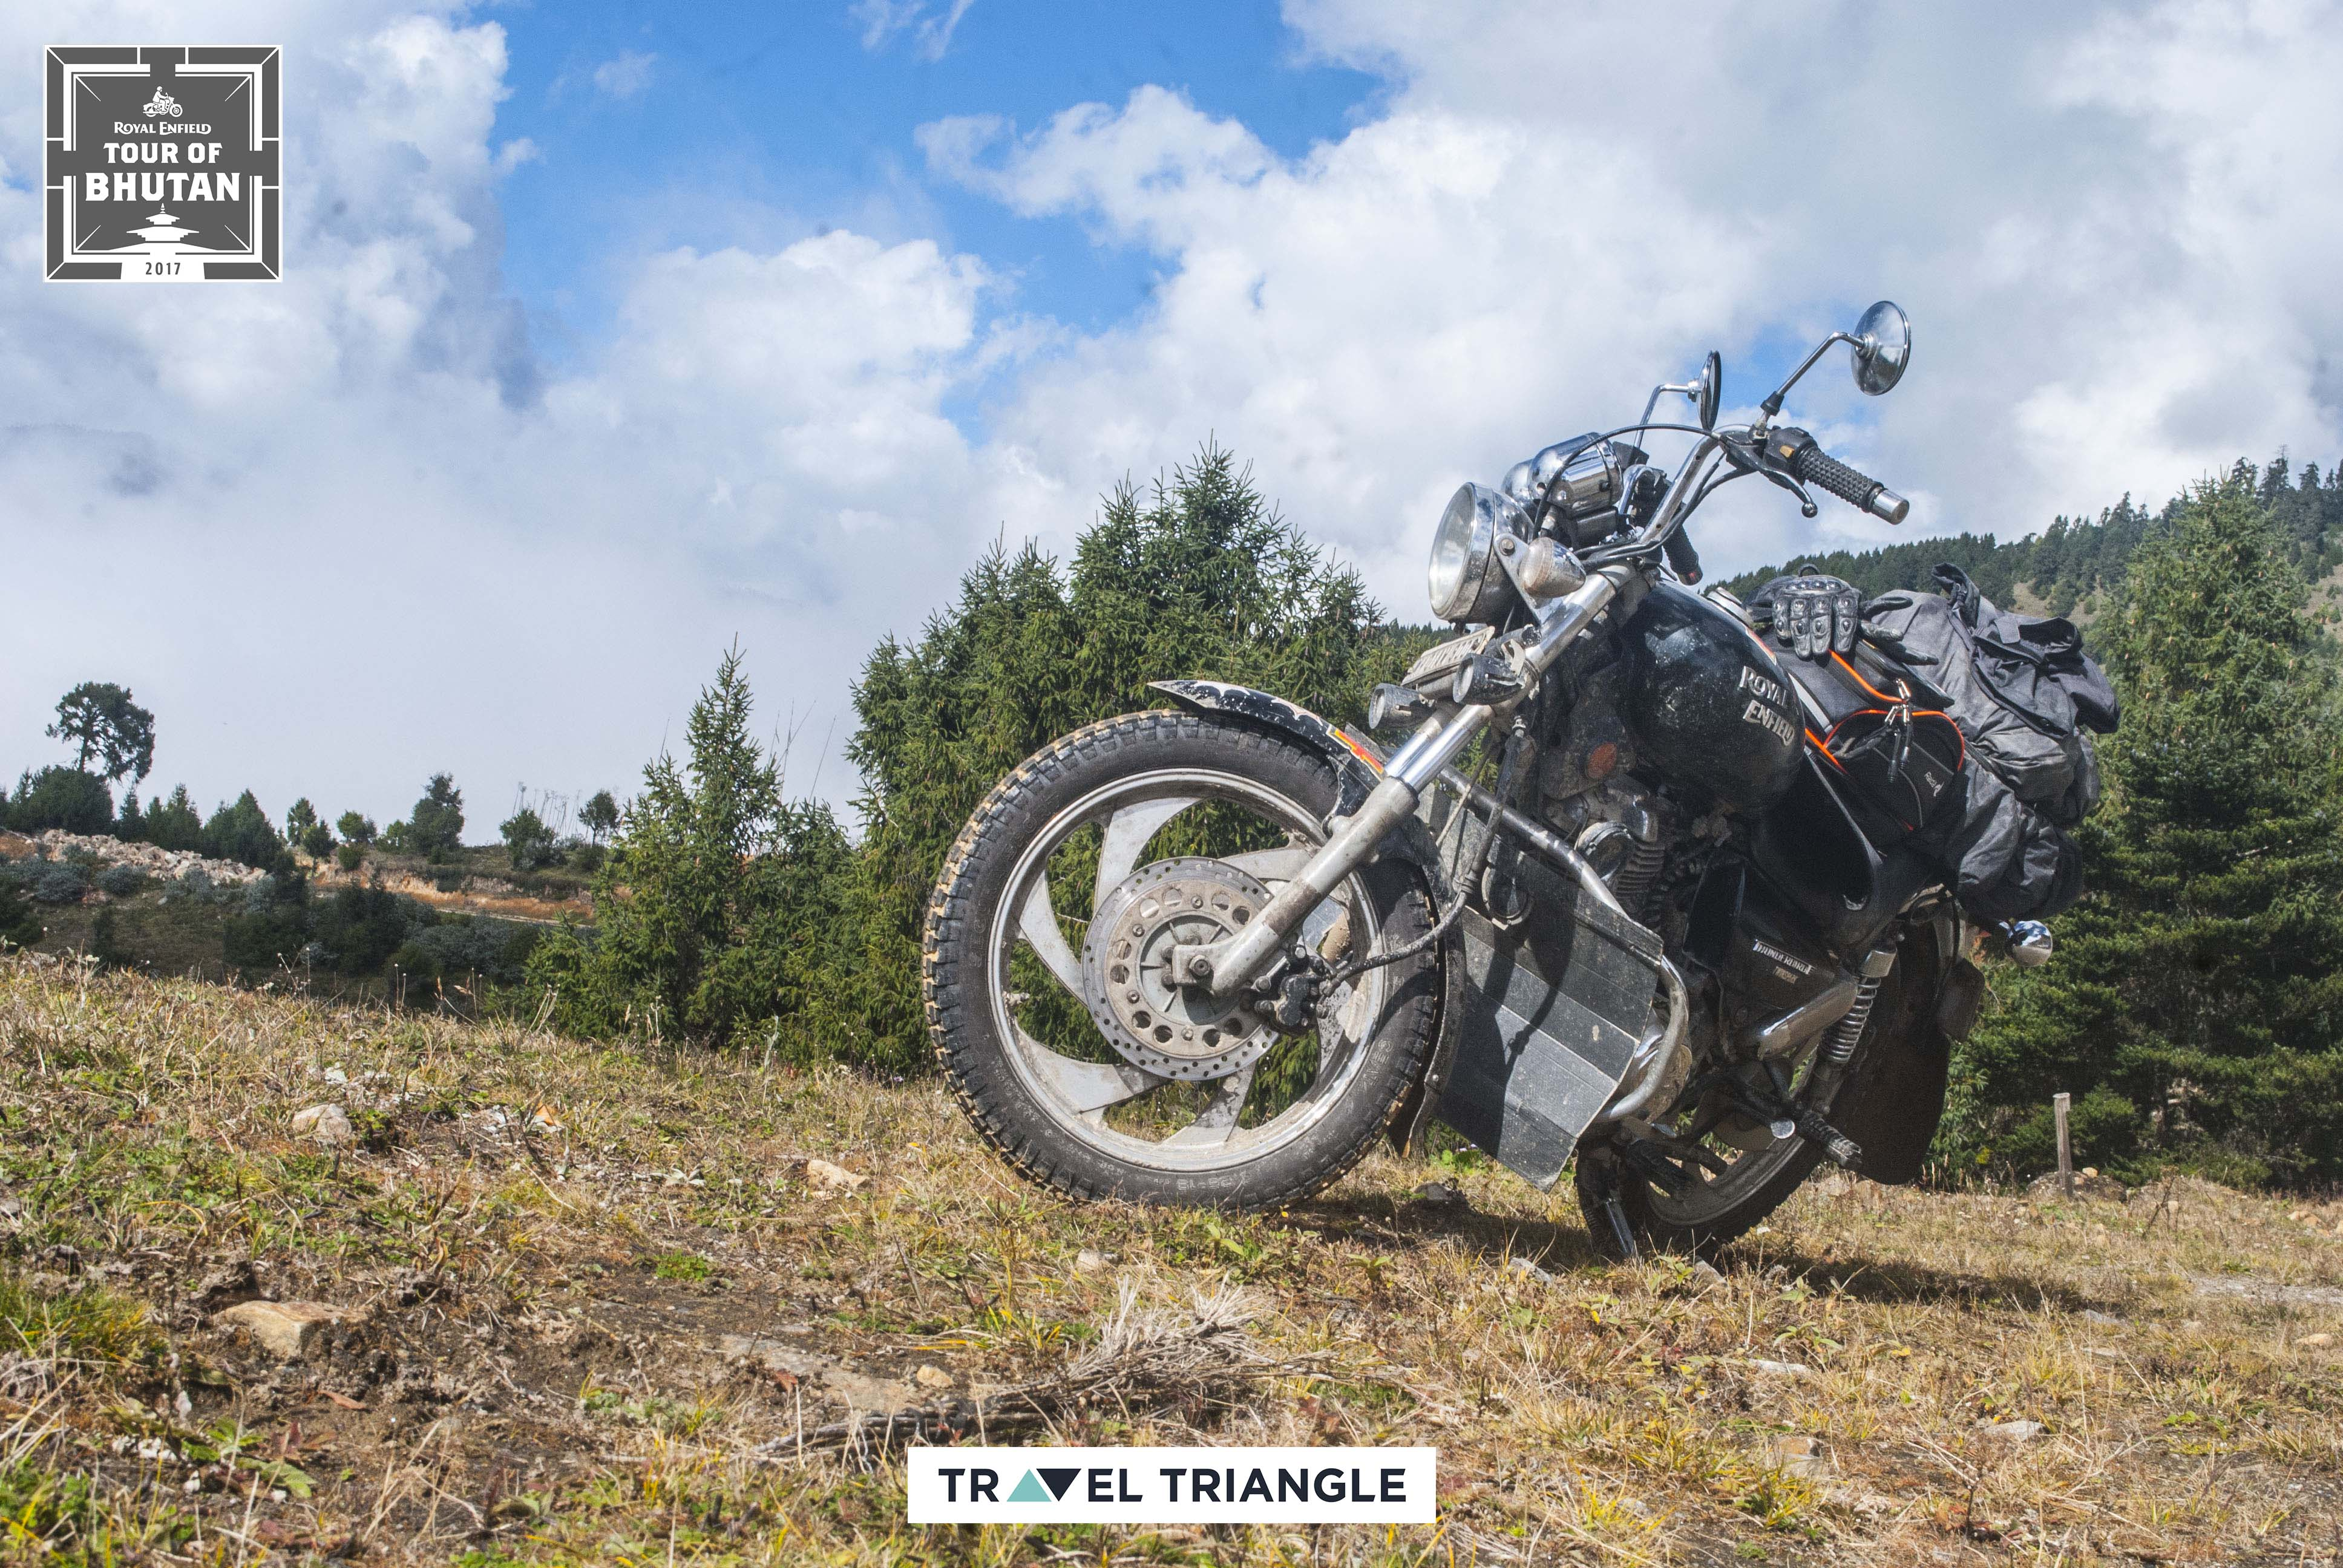 Bumthang to Mongar: siddharth's bike